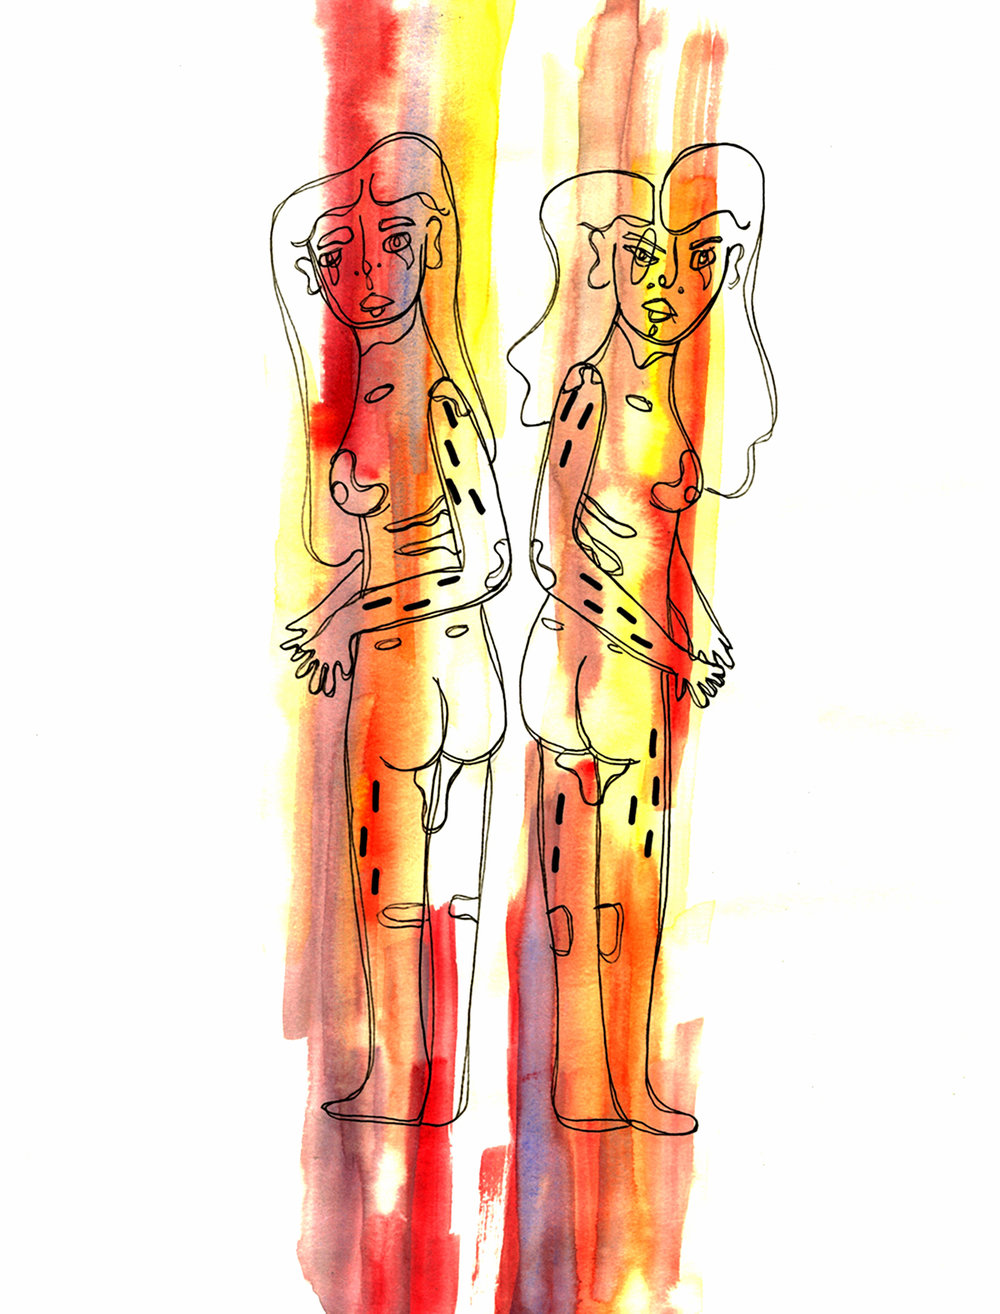 Twins Nude  by Denver Blevins   Twins Nude  combines watercolor and pen, and its subject explores female acknowledgement of the male gaze.   This piece was first published in Quarto's Spring 2018 edition.